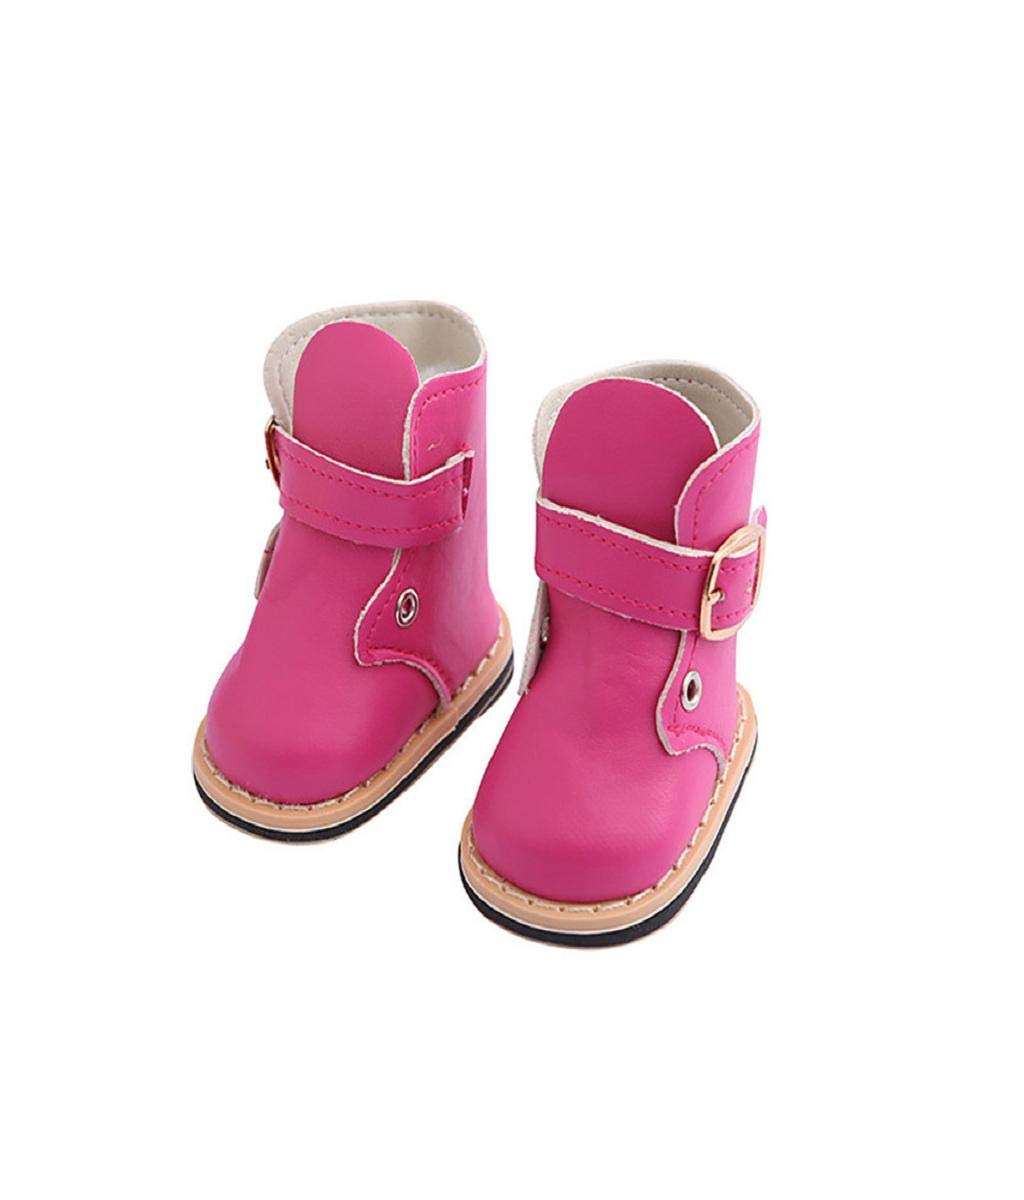 Cute Fashion Boots Shoes Clothes Accessory For 18 Inch American Girl Doll